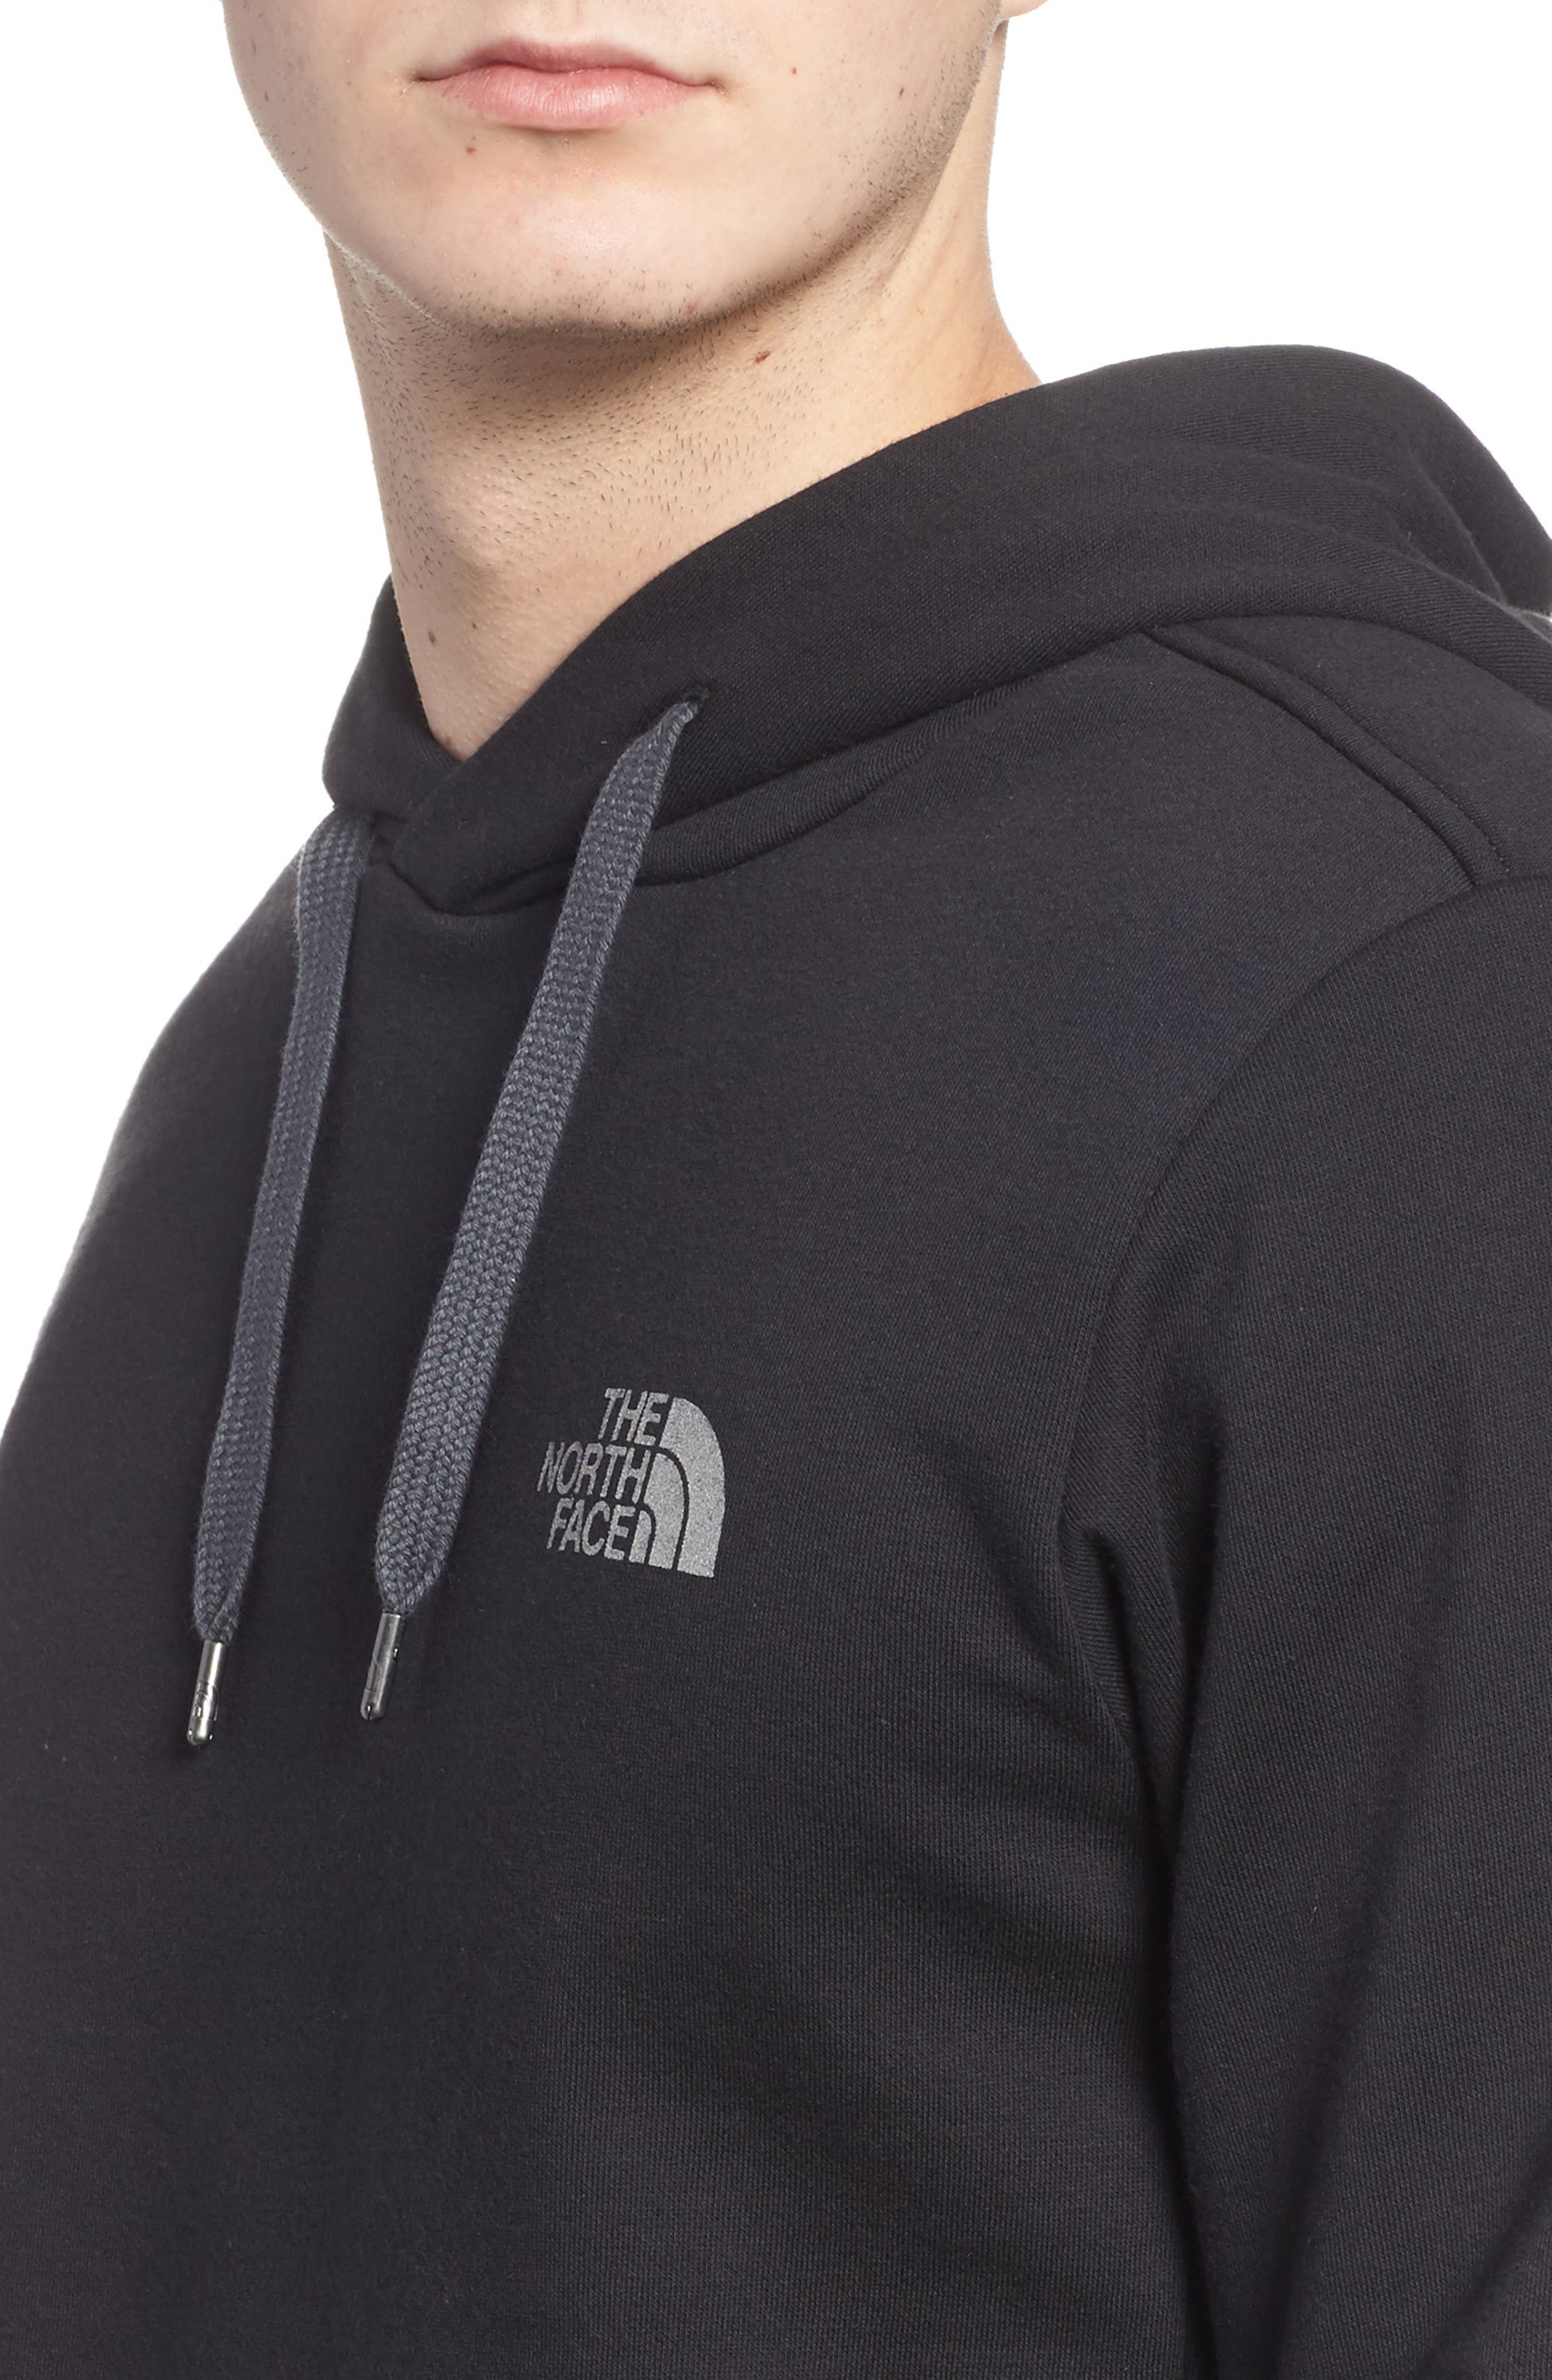 Trivert Cotton Blend Hoodie,                             Alternate thumbnail 4, color,                             001